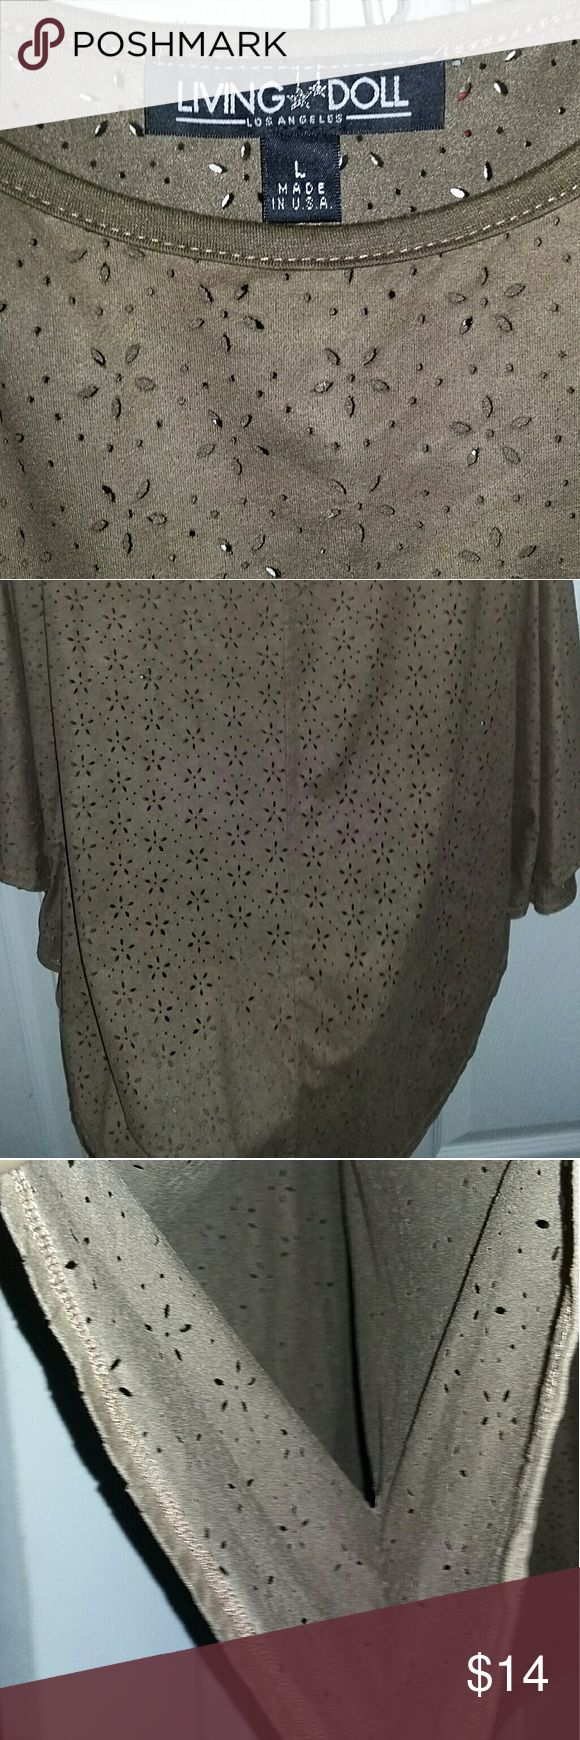 boho festival poncho Large awesome bohi gypsy festival brown suede material poncho. Perfect with a tank underneath with cutoffs. Cute piece for your wardrobe. In good condition size large Tops